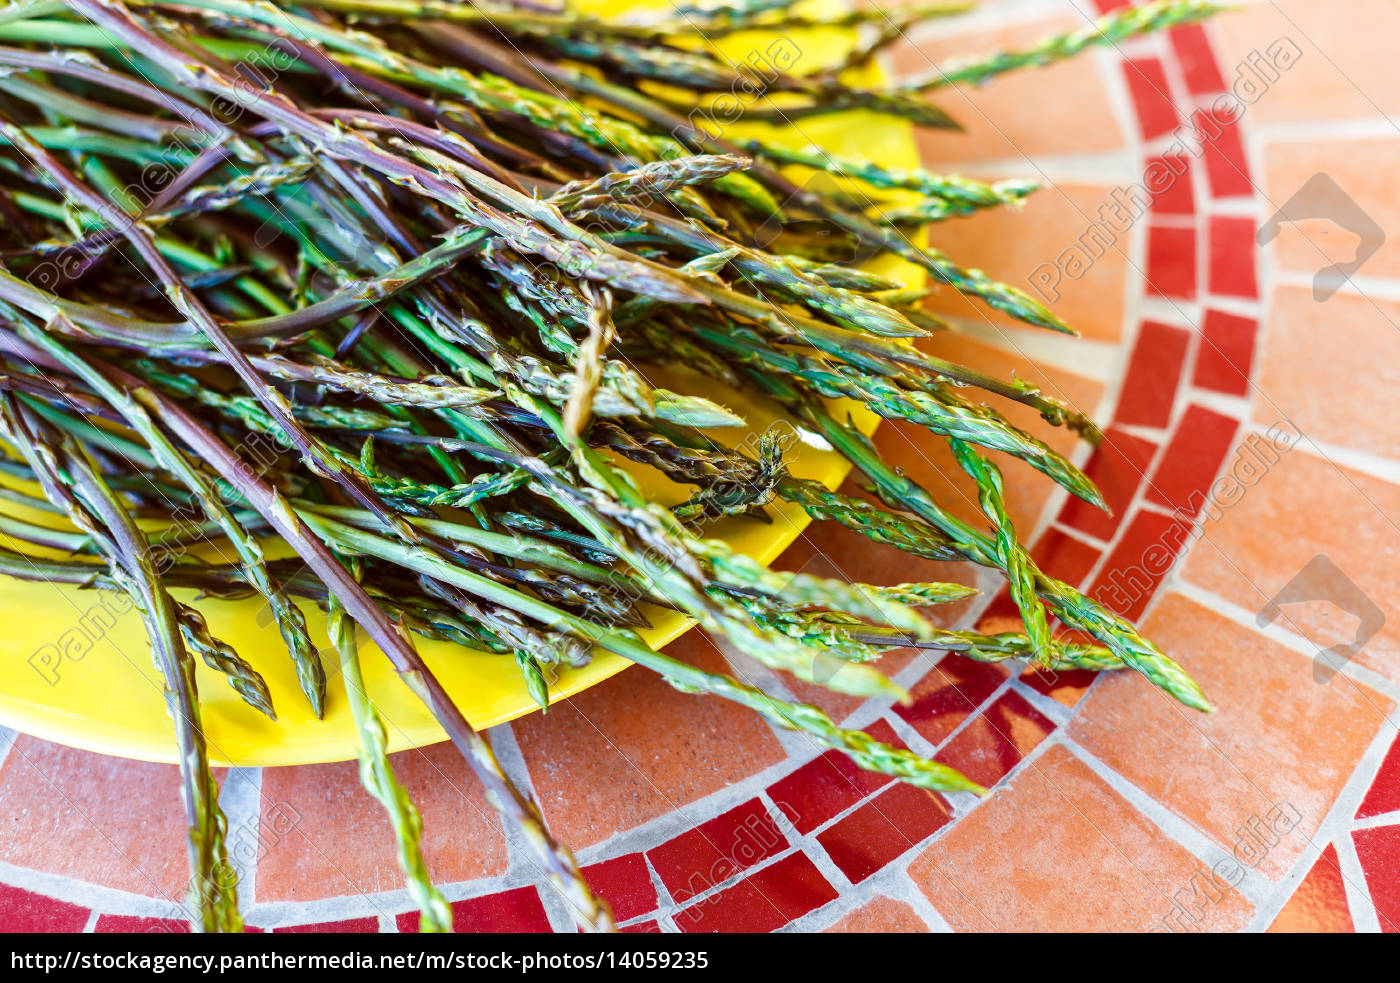 wild, asparagus, shoots, on, yellow, plate - 14059235